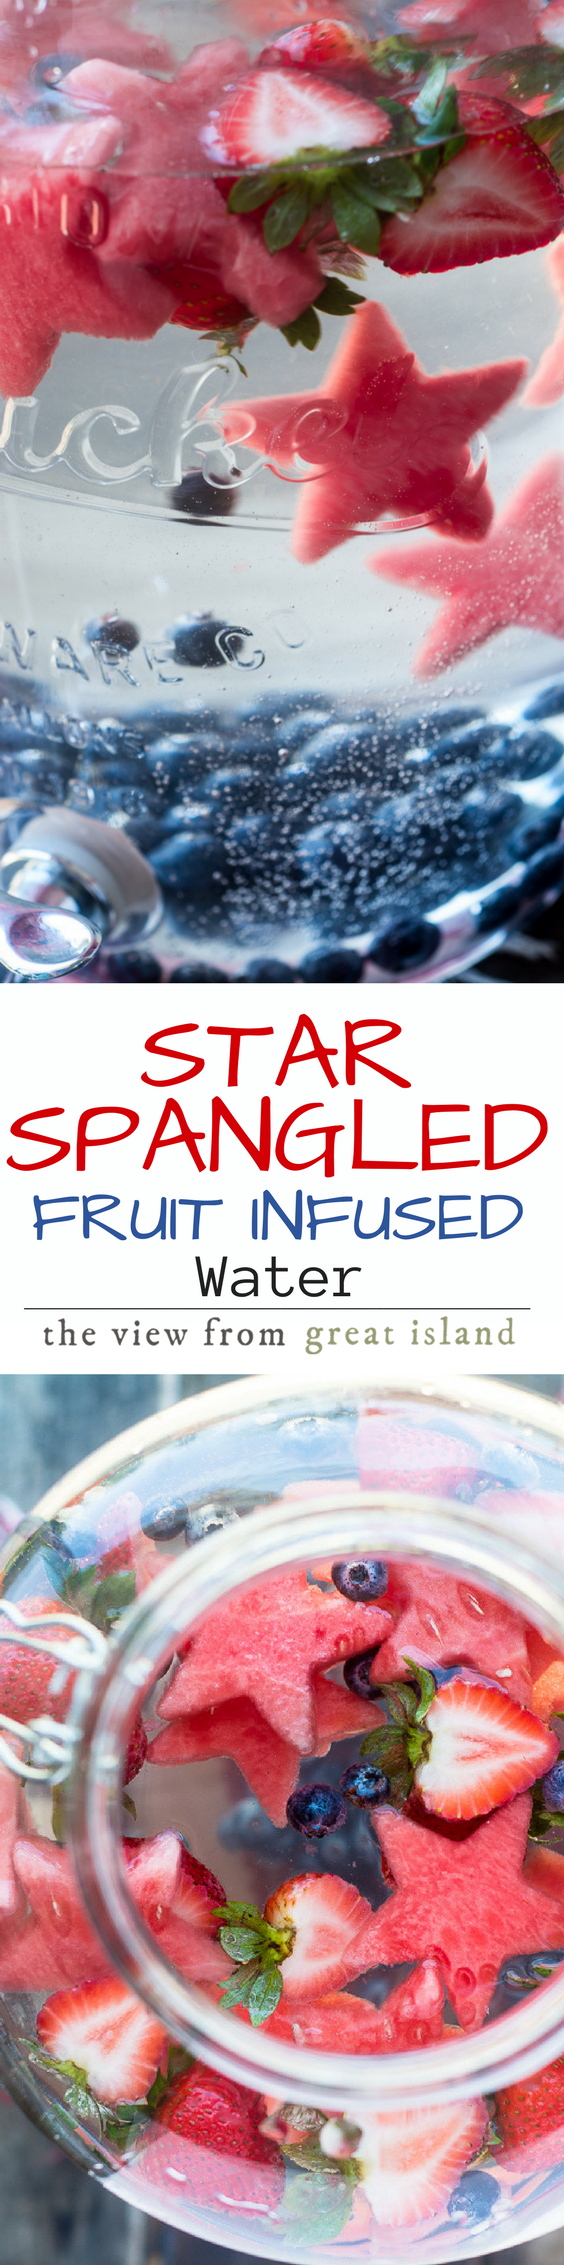 Star Spangled Fruit Infused Water pin